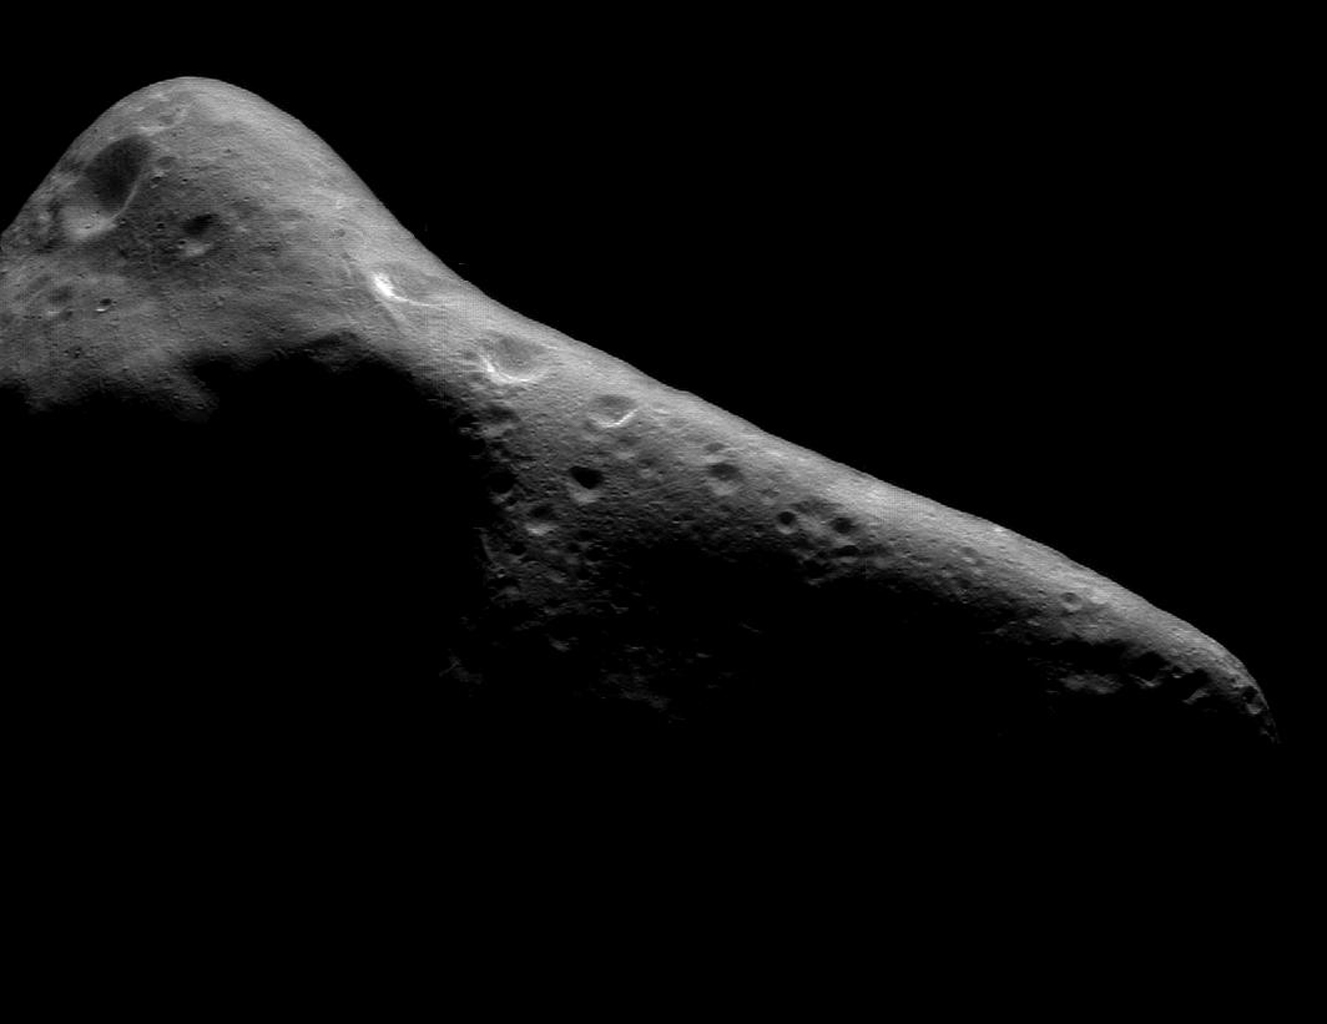 This image of asteroid Eros was taken by NASA's NEAR Shoemaker on Feb 29, 2000. Many parts of the asteroid have 'grooves,' linear troughs about 330 feet wide and several miles long.